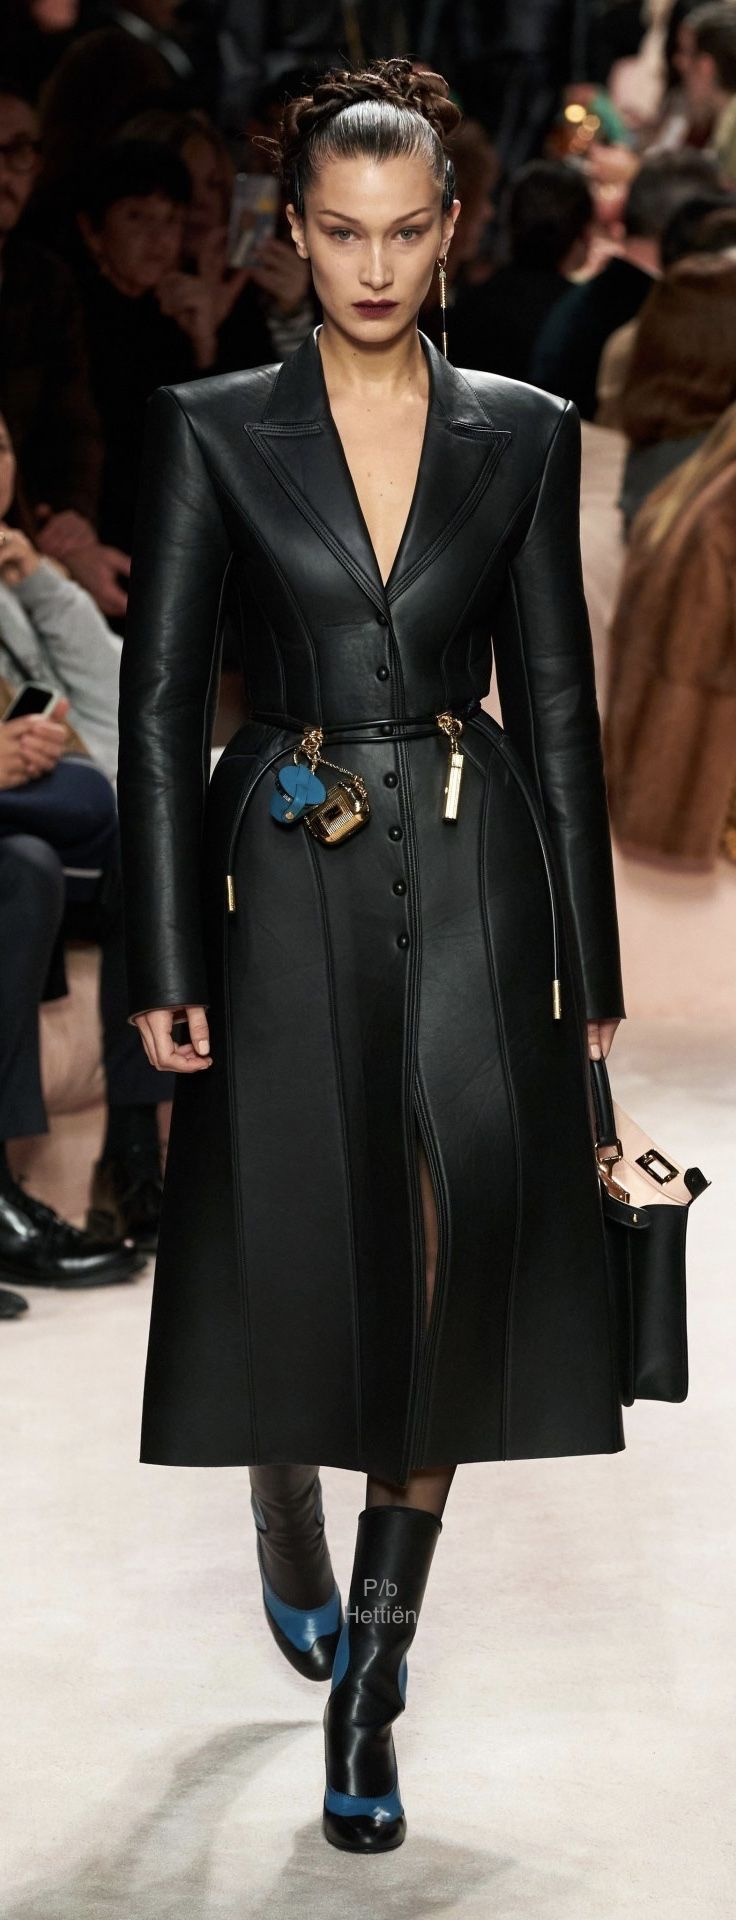 Pin By Hettien On Bella Hadid Fendi Runway Stage Outfits Luxury Outfits [ 1920 x 736 Pixel ]